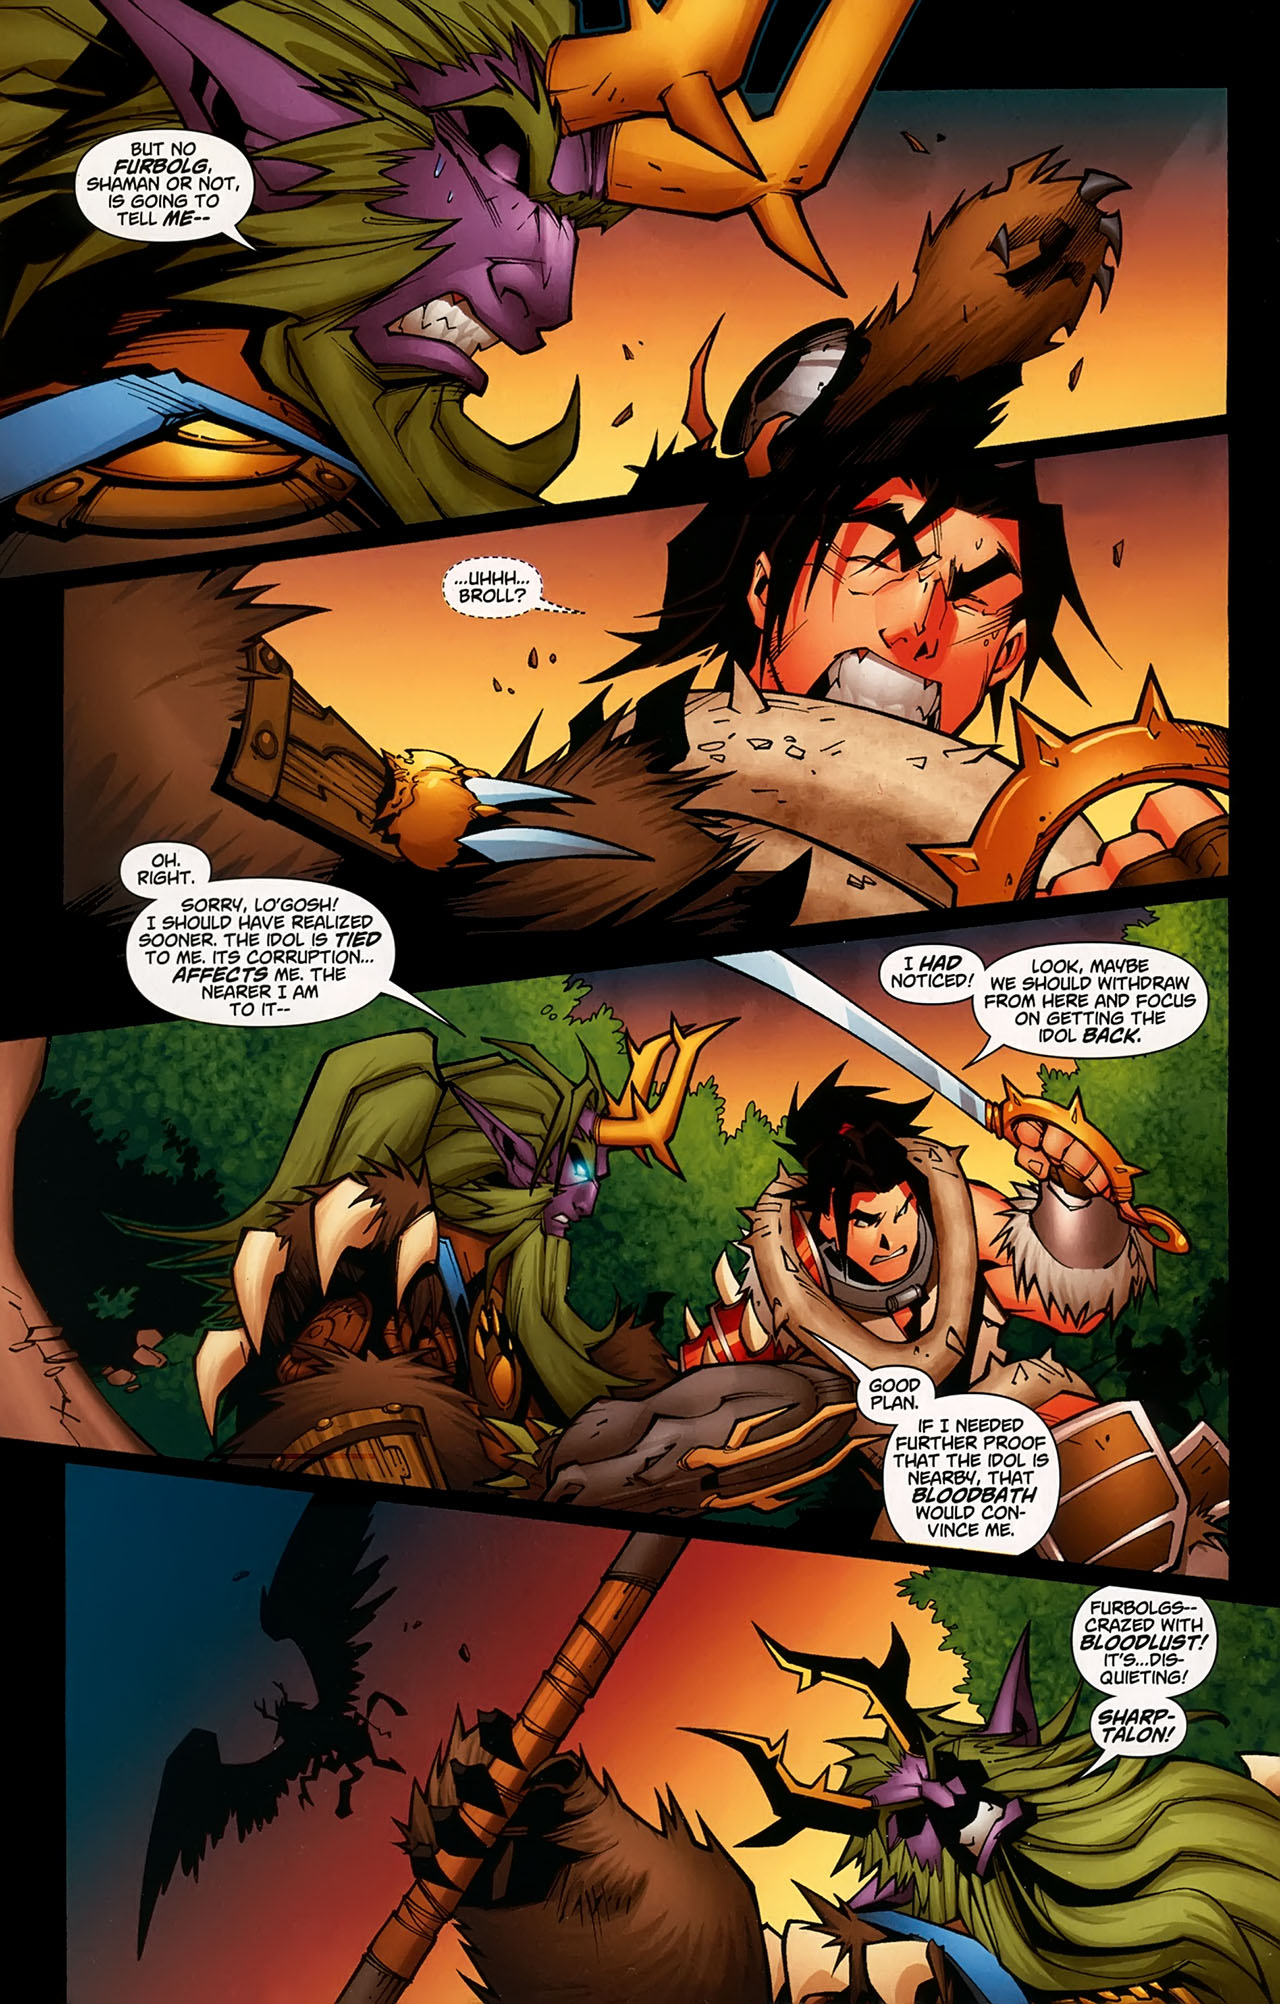 Read online World of Warcraft comic -  Issue #5 - 8